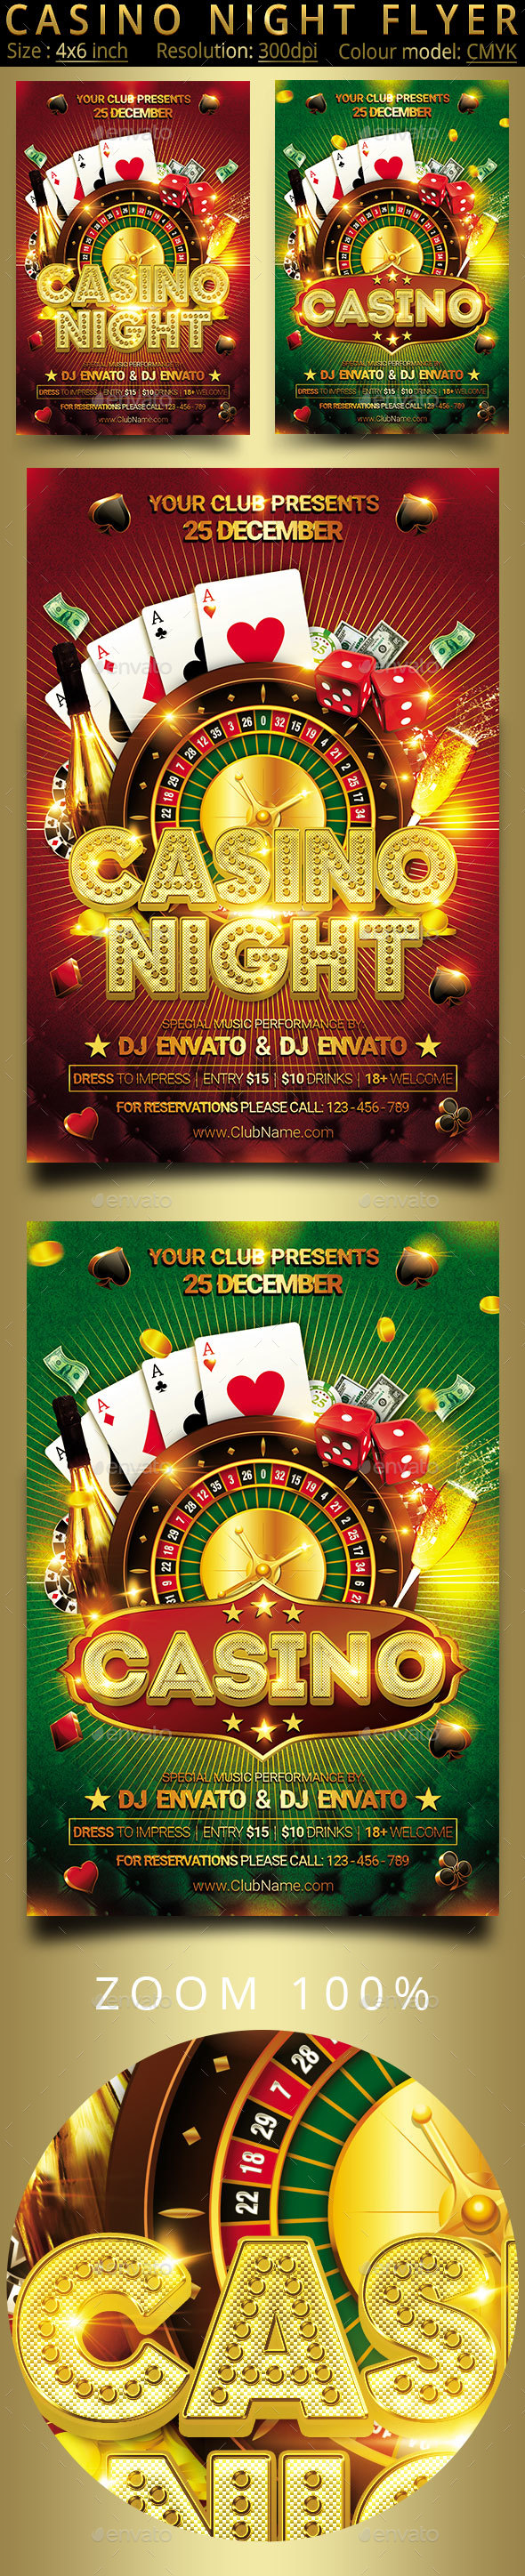 Casino Night Flyer 2in1 - Clubs & Parties Events